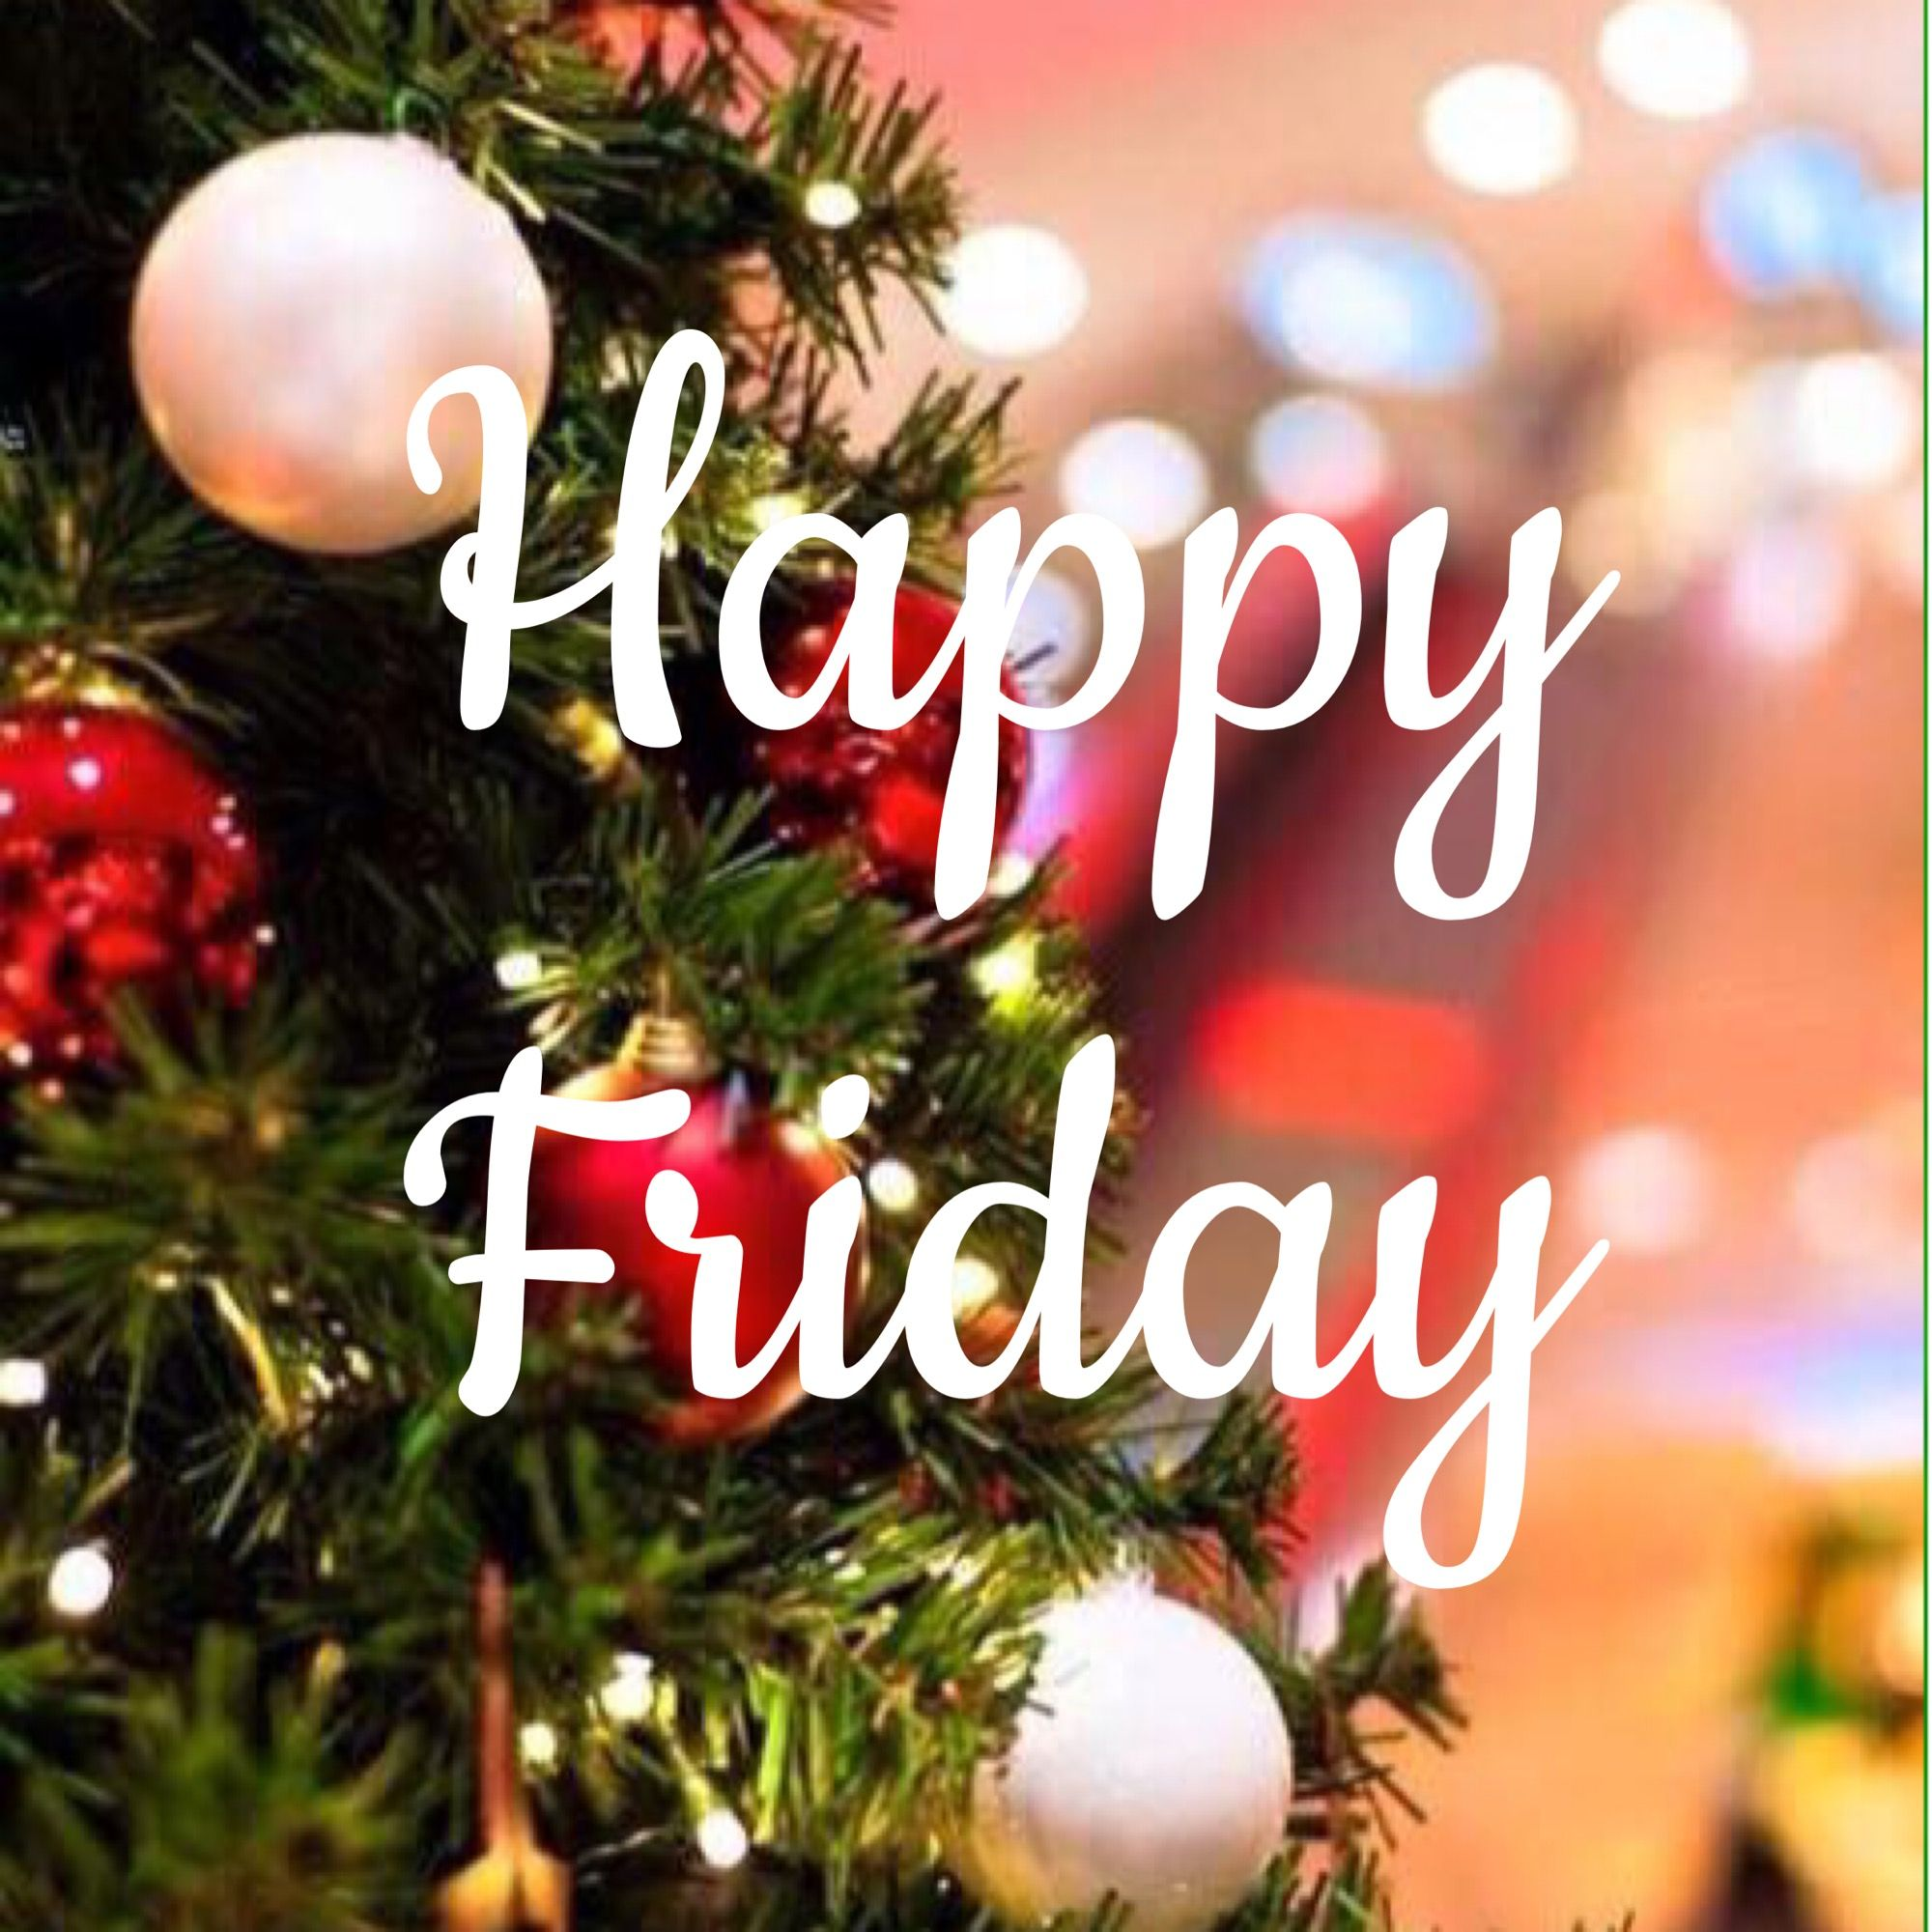 Image result for happy friday images christmas